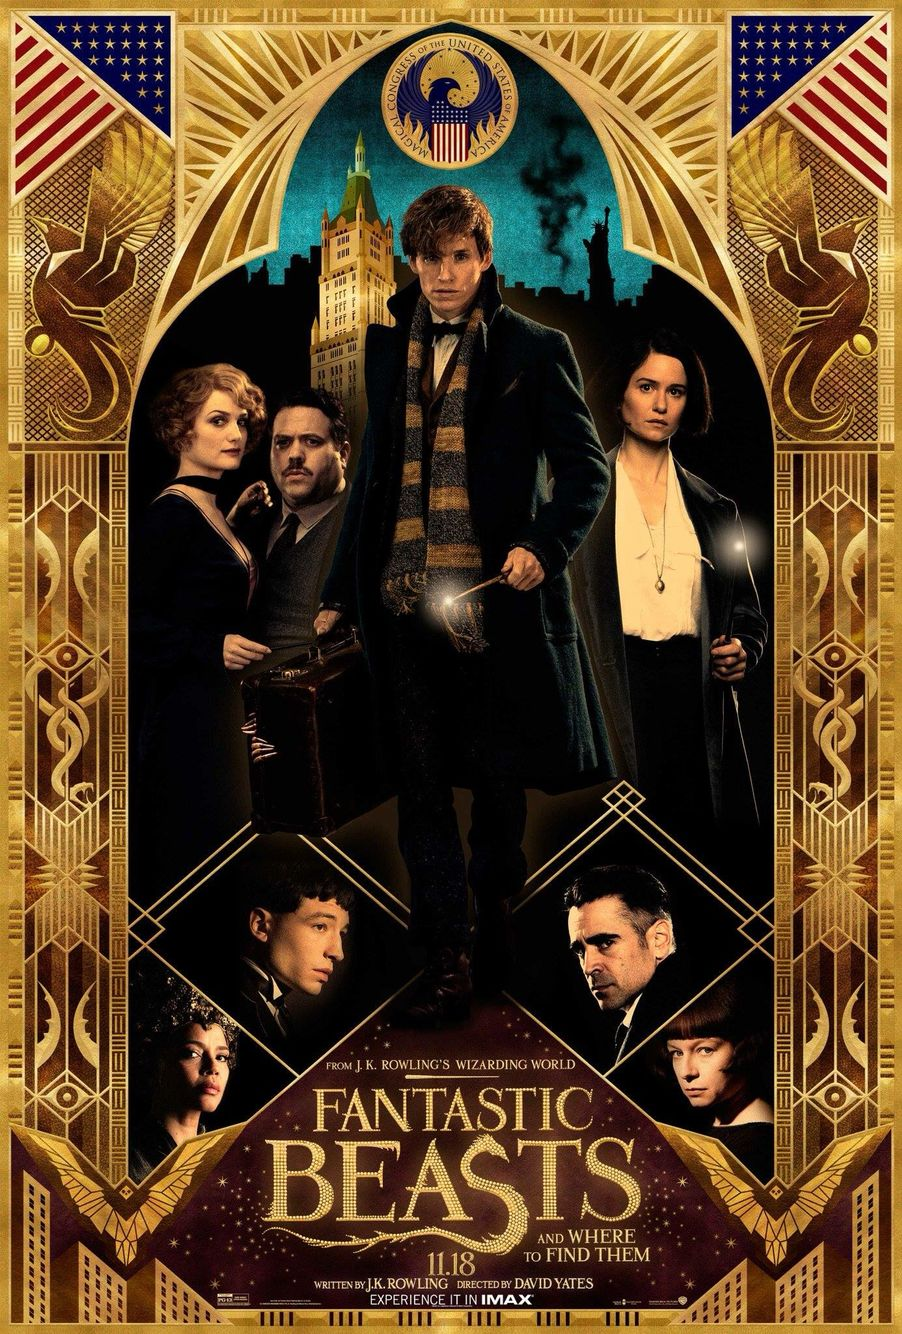 Pin By Sarie Bye On Fantastics Beasts Fantastic Beasts Movie